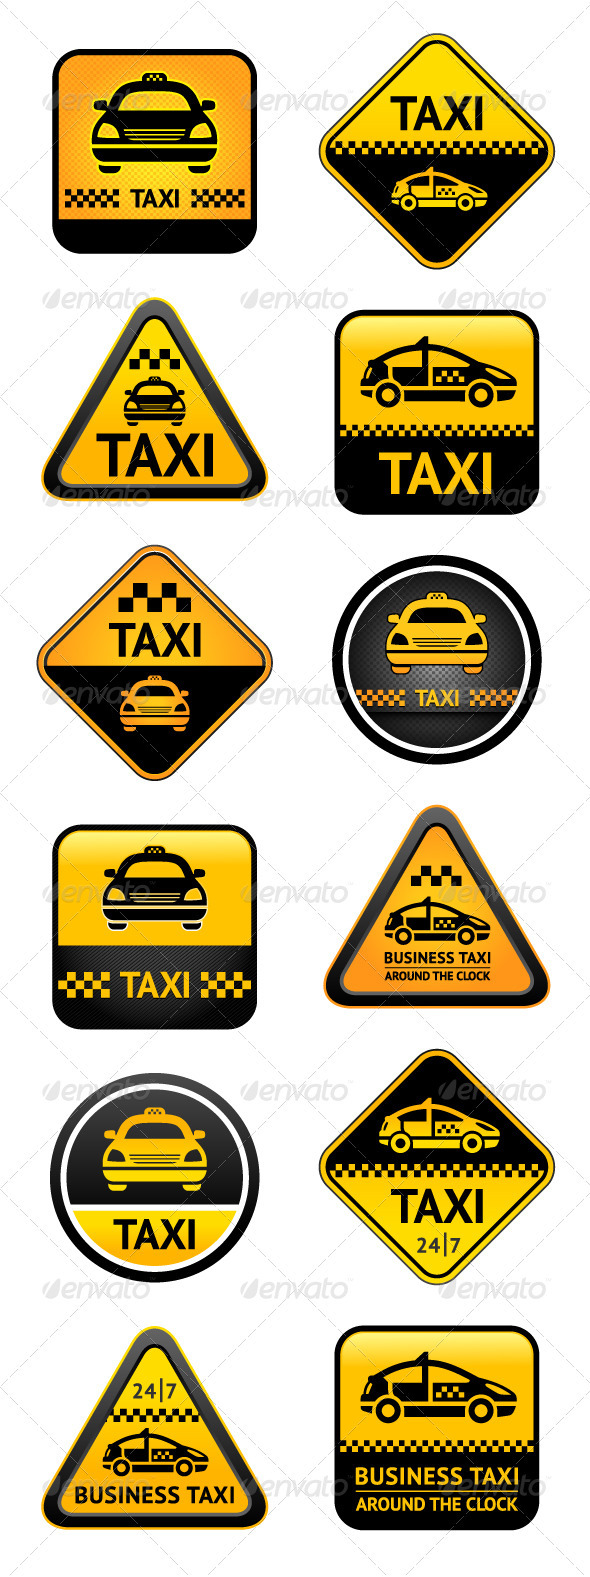 GraphicRiver Taxi Set Buttons 3619890